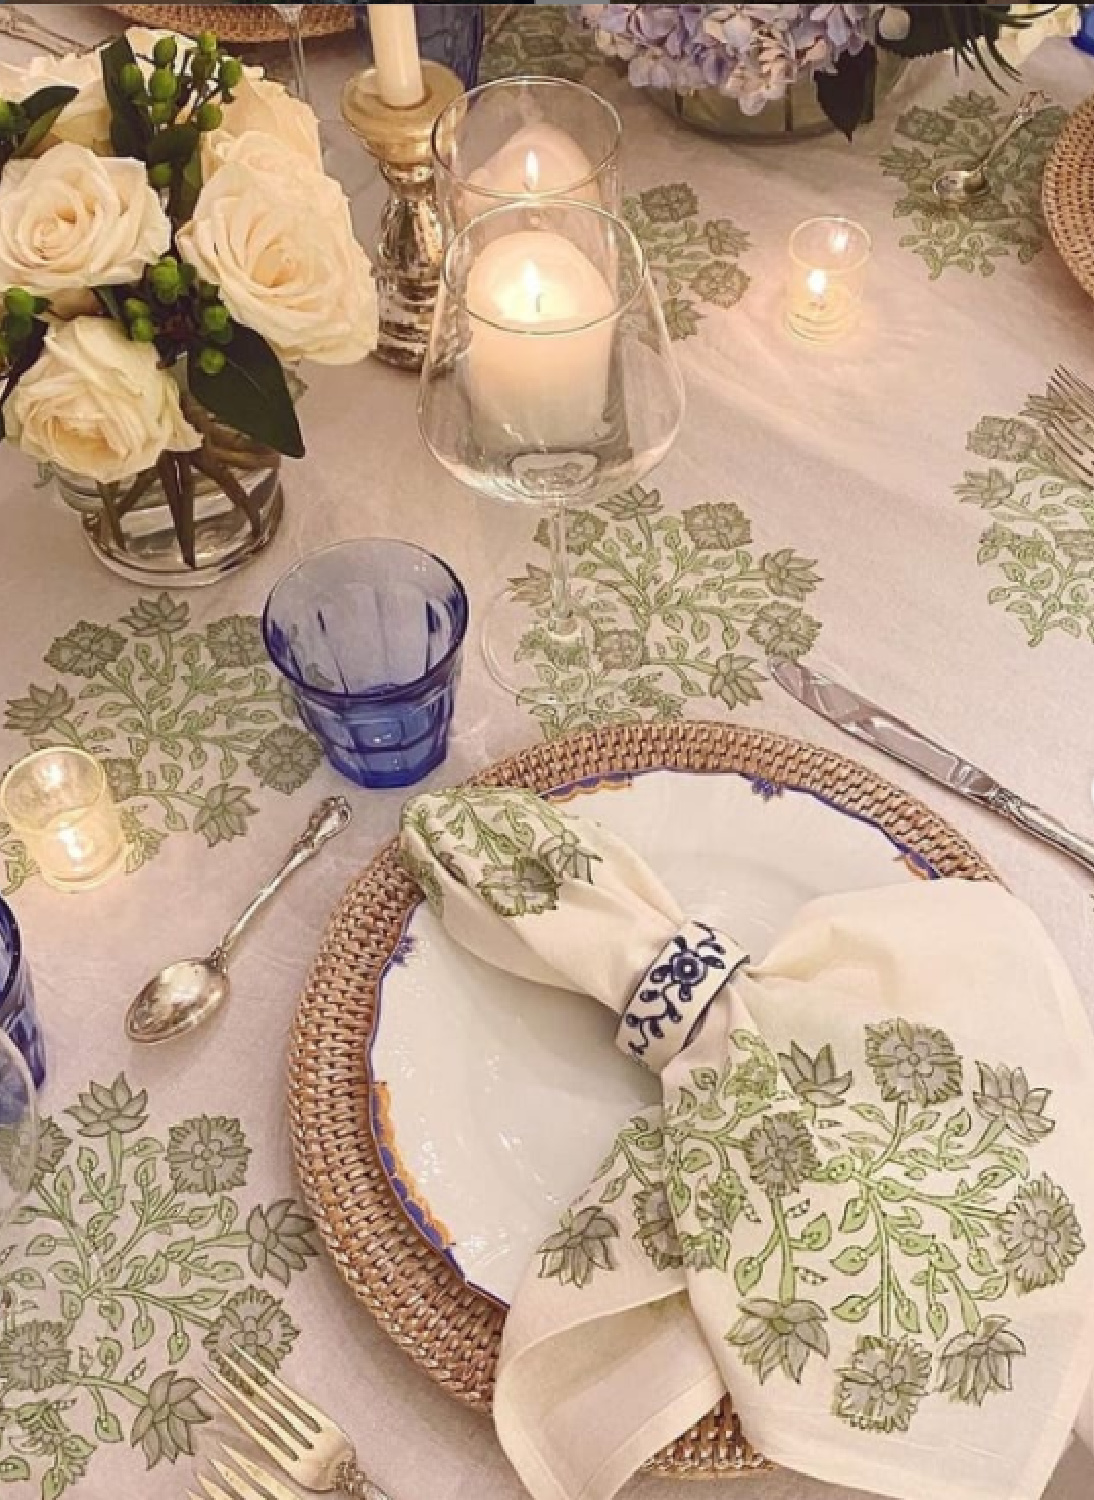 Beautiful Christmas place setting and holiday table with soft green and blue accents - @meganstokes. #holidayplacesetting